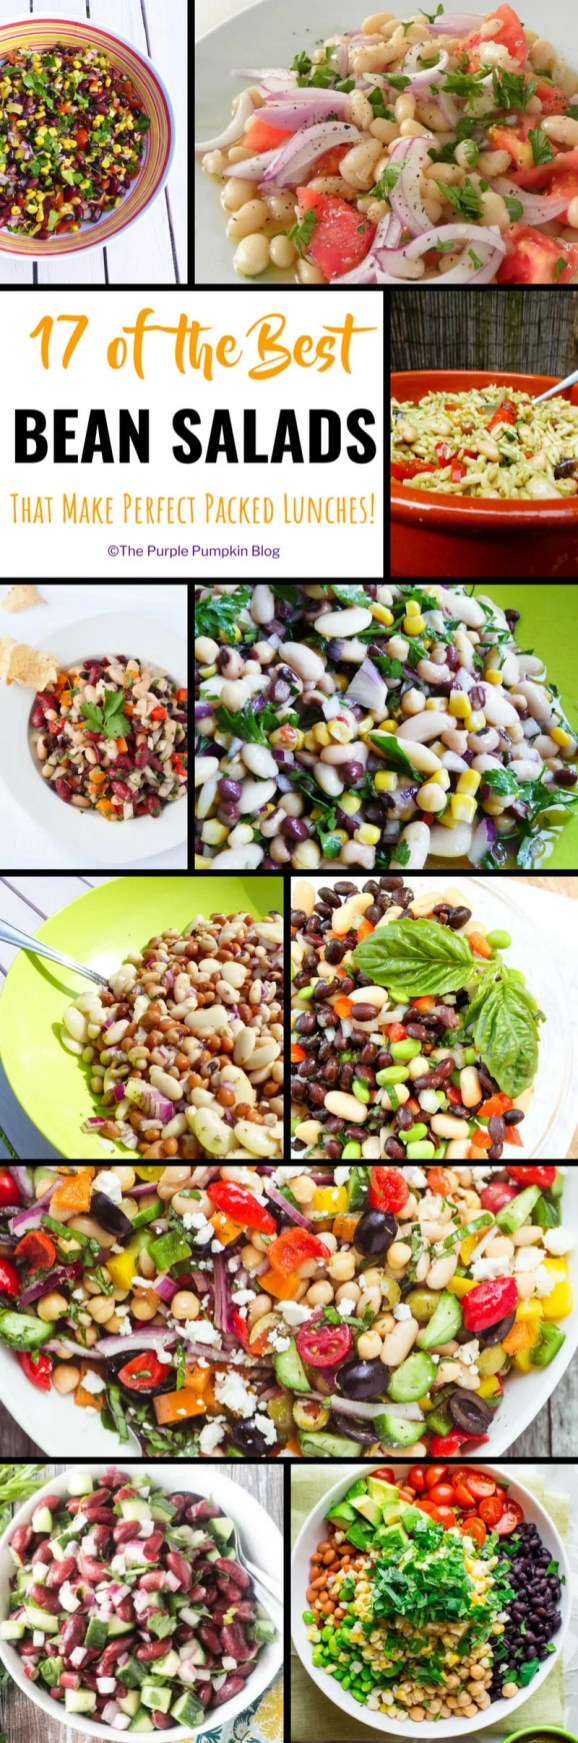 Do you find yourself having the same food for lunch, day in, day out? Stuck for ideas of what to prepare for packed lunches for work? You've hit the right spot on the internet because here are 17 of the best bean salads that are perfect for packed lunches!